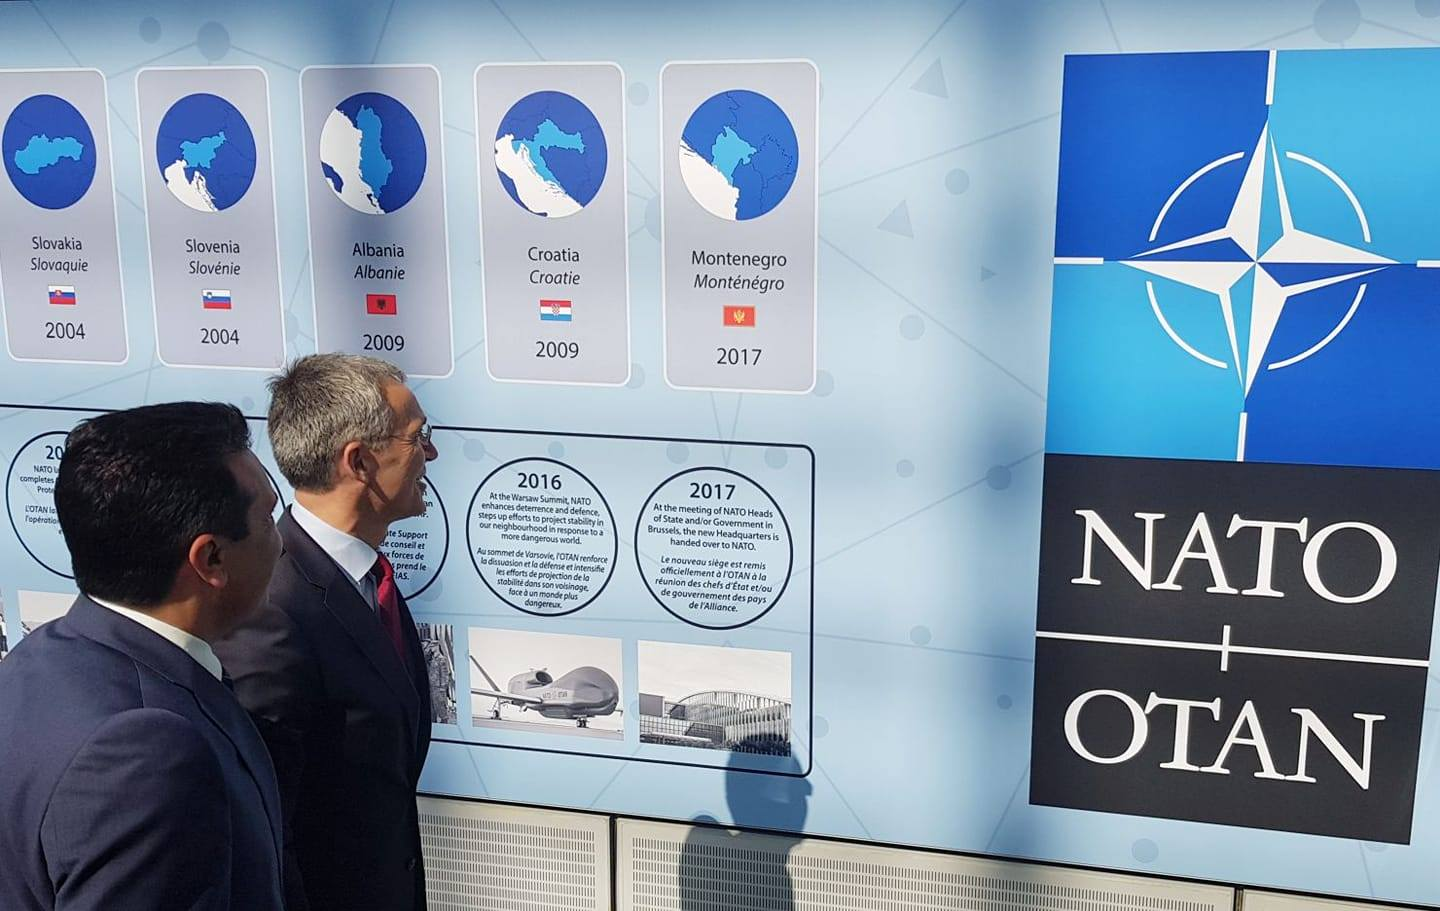 Stoltenberg-Zaev: Finalization of the agreement will be followed by accession in the NATO